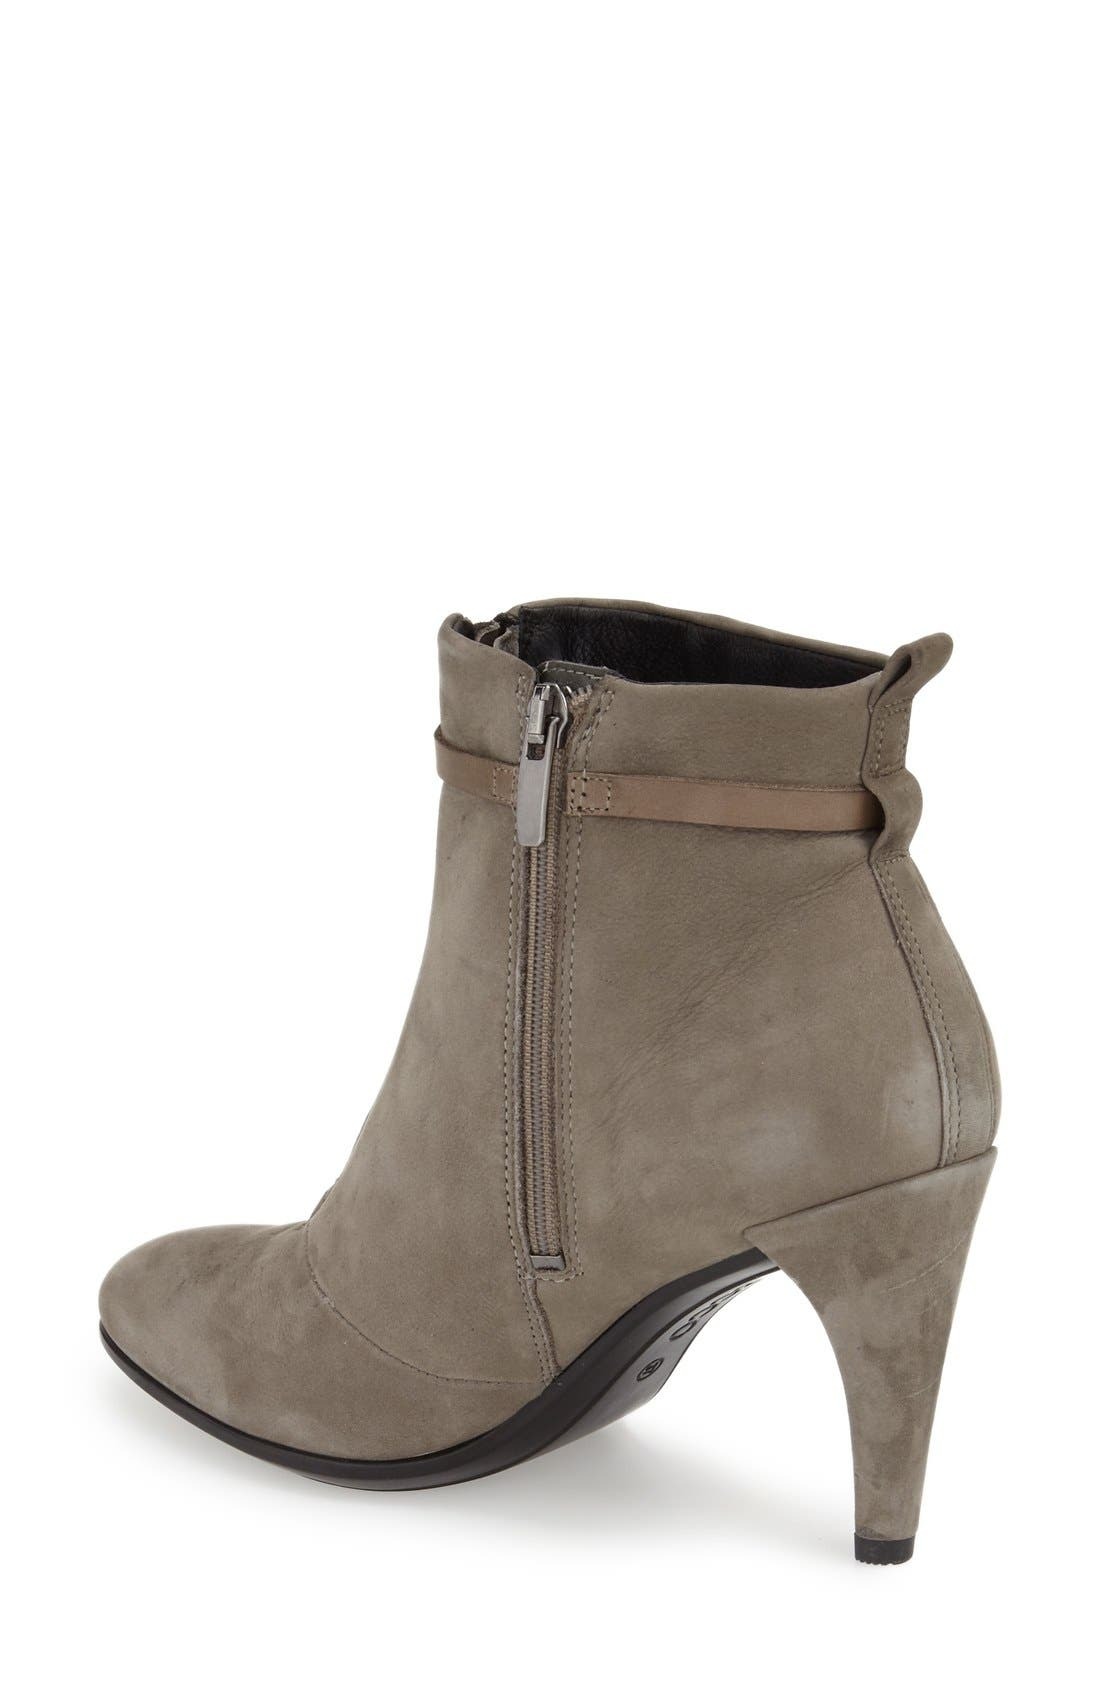 'Shape 75' Bootie,                             Alternate thumbnail 2, color,                             Warm Grey Nubuck Leather